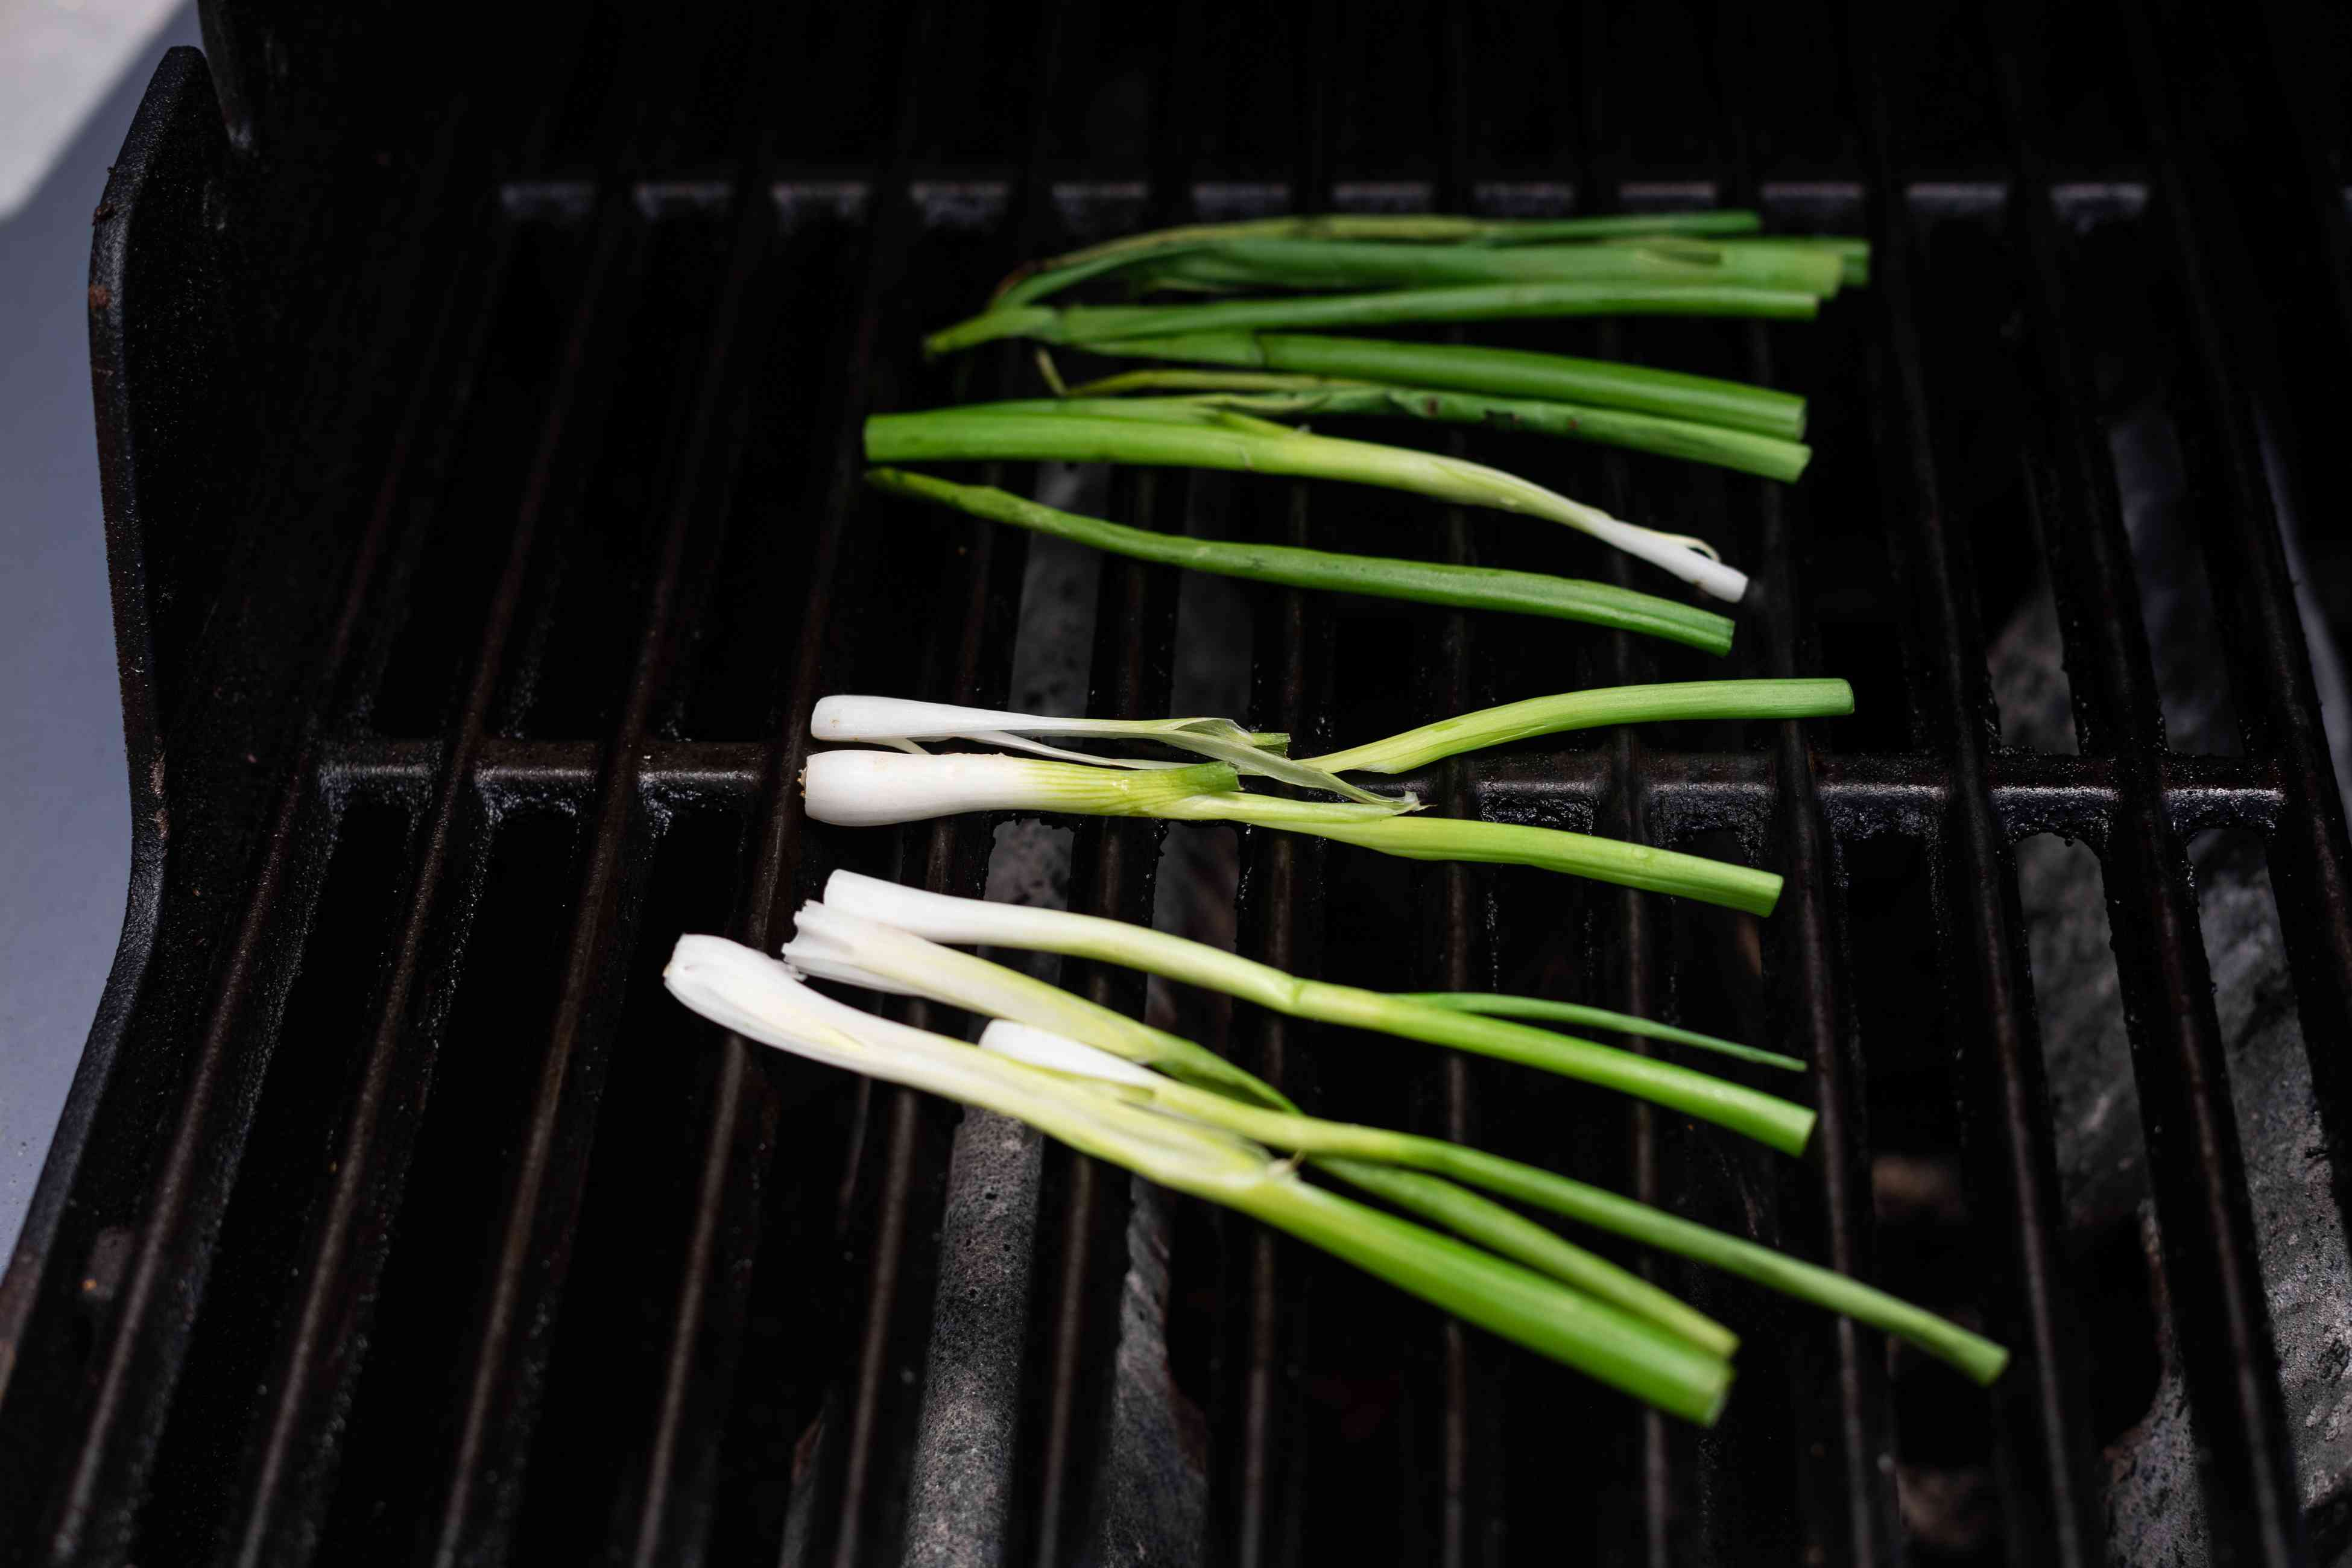 Grilling scallions to make grilled cabbage with peanut satay sauce.